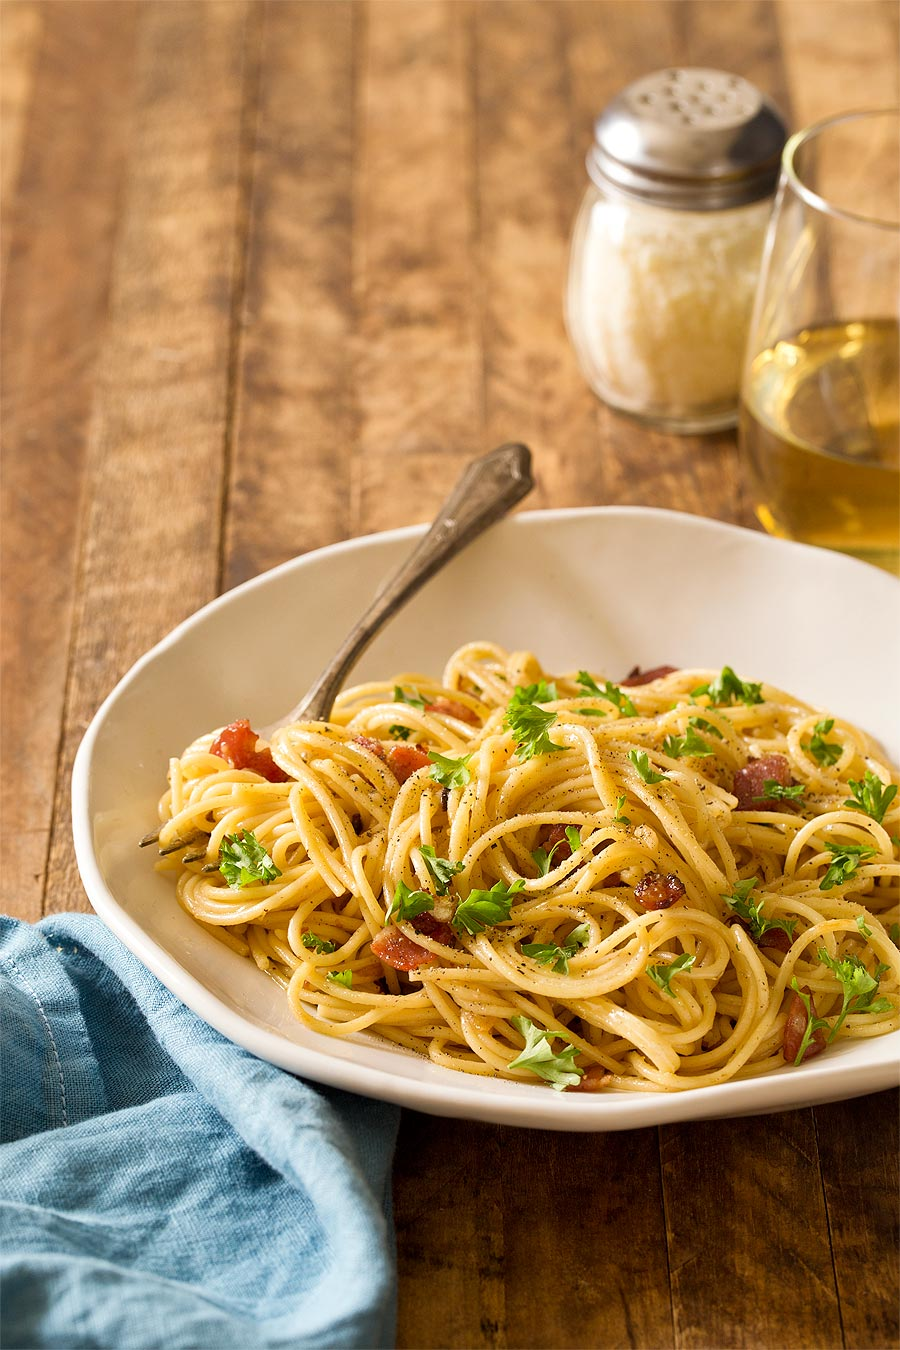 Carbonara by Carla Cardello Food Photographer